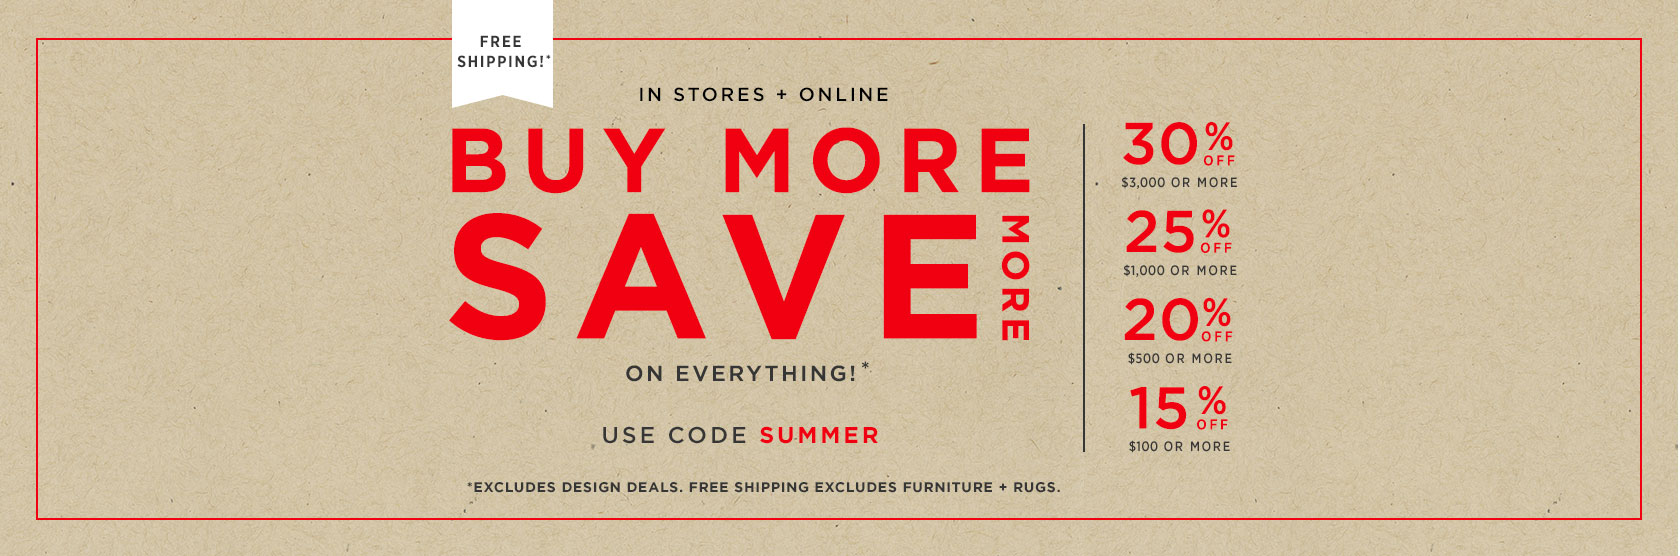 Buy More Save More! Up To 30% Off + Free Shipping. Use Code SUMMER